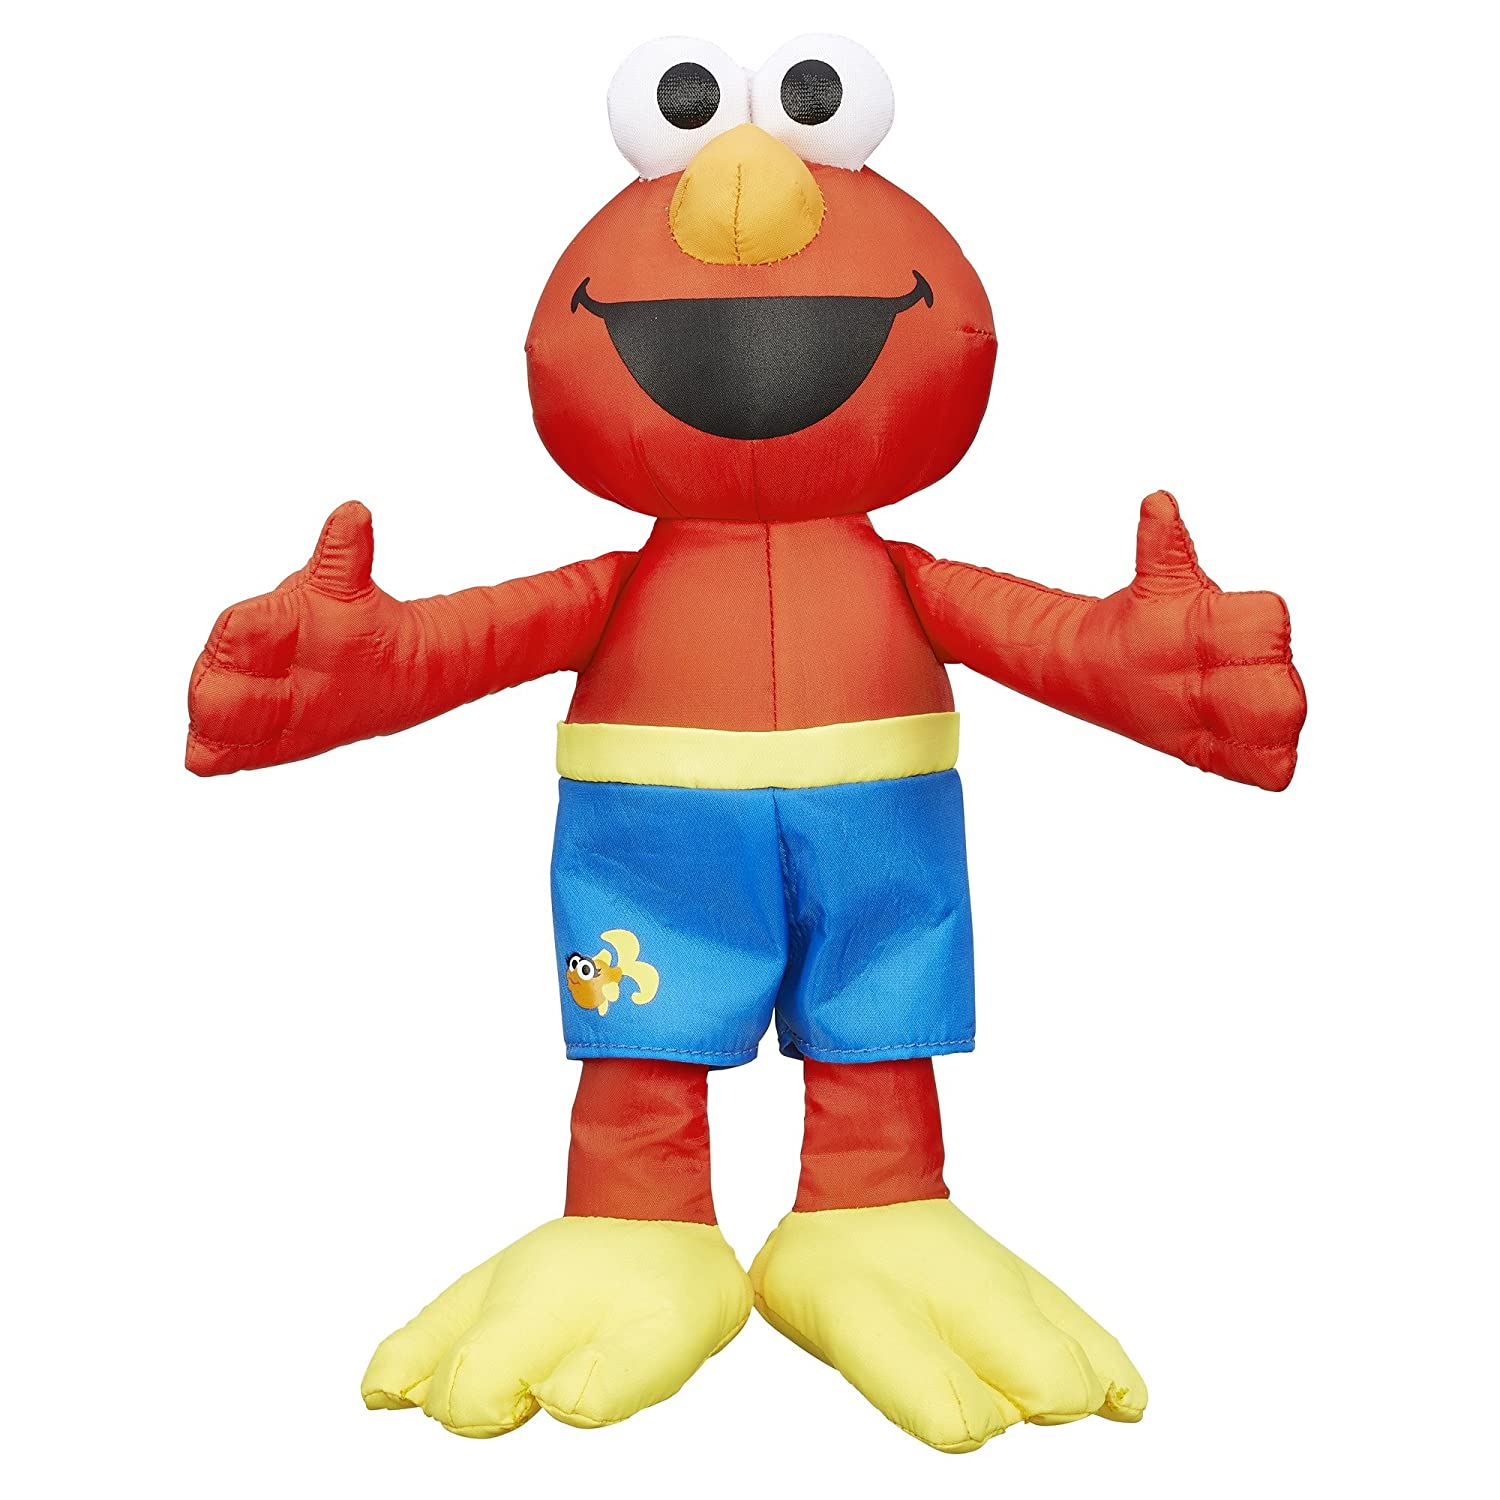 Sesame Street Toys For Toddlers : Elmo toys for year old boys and toddlers